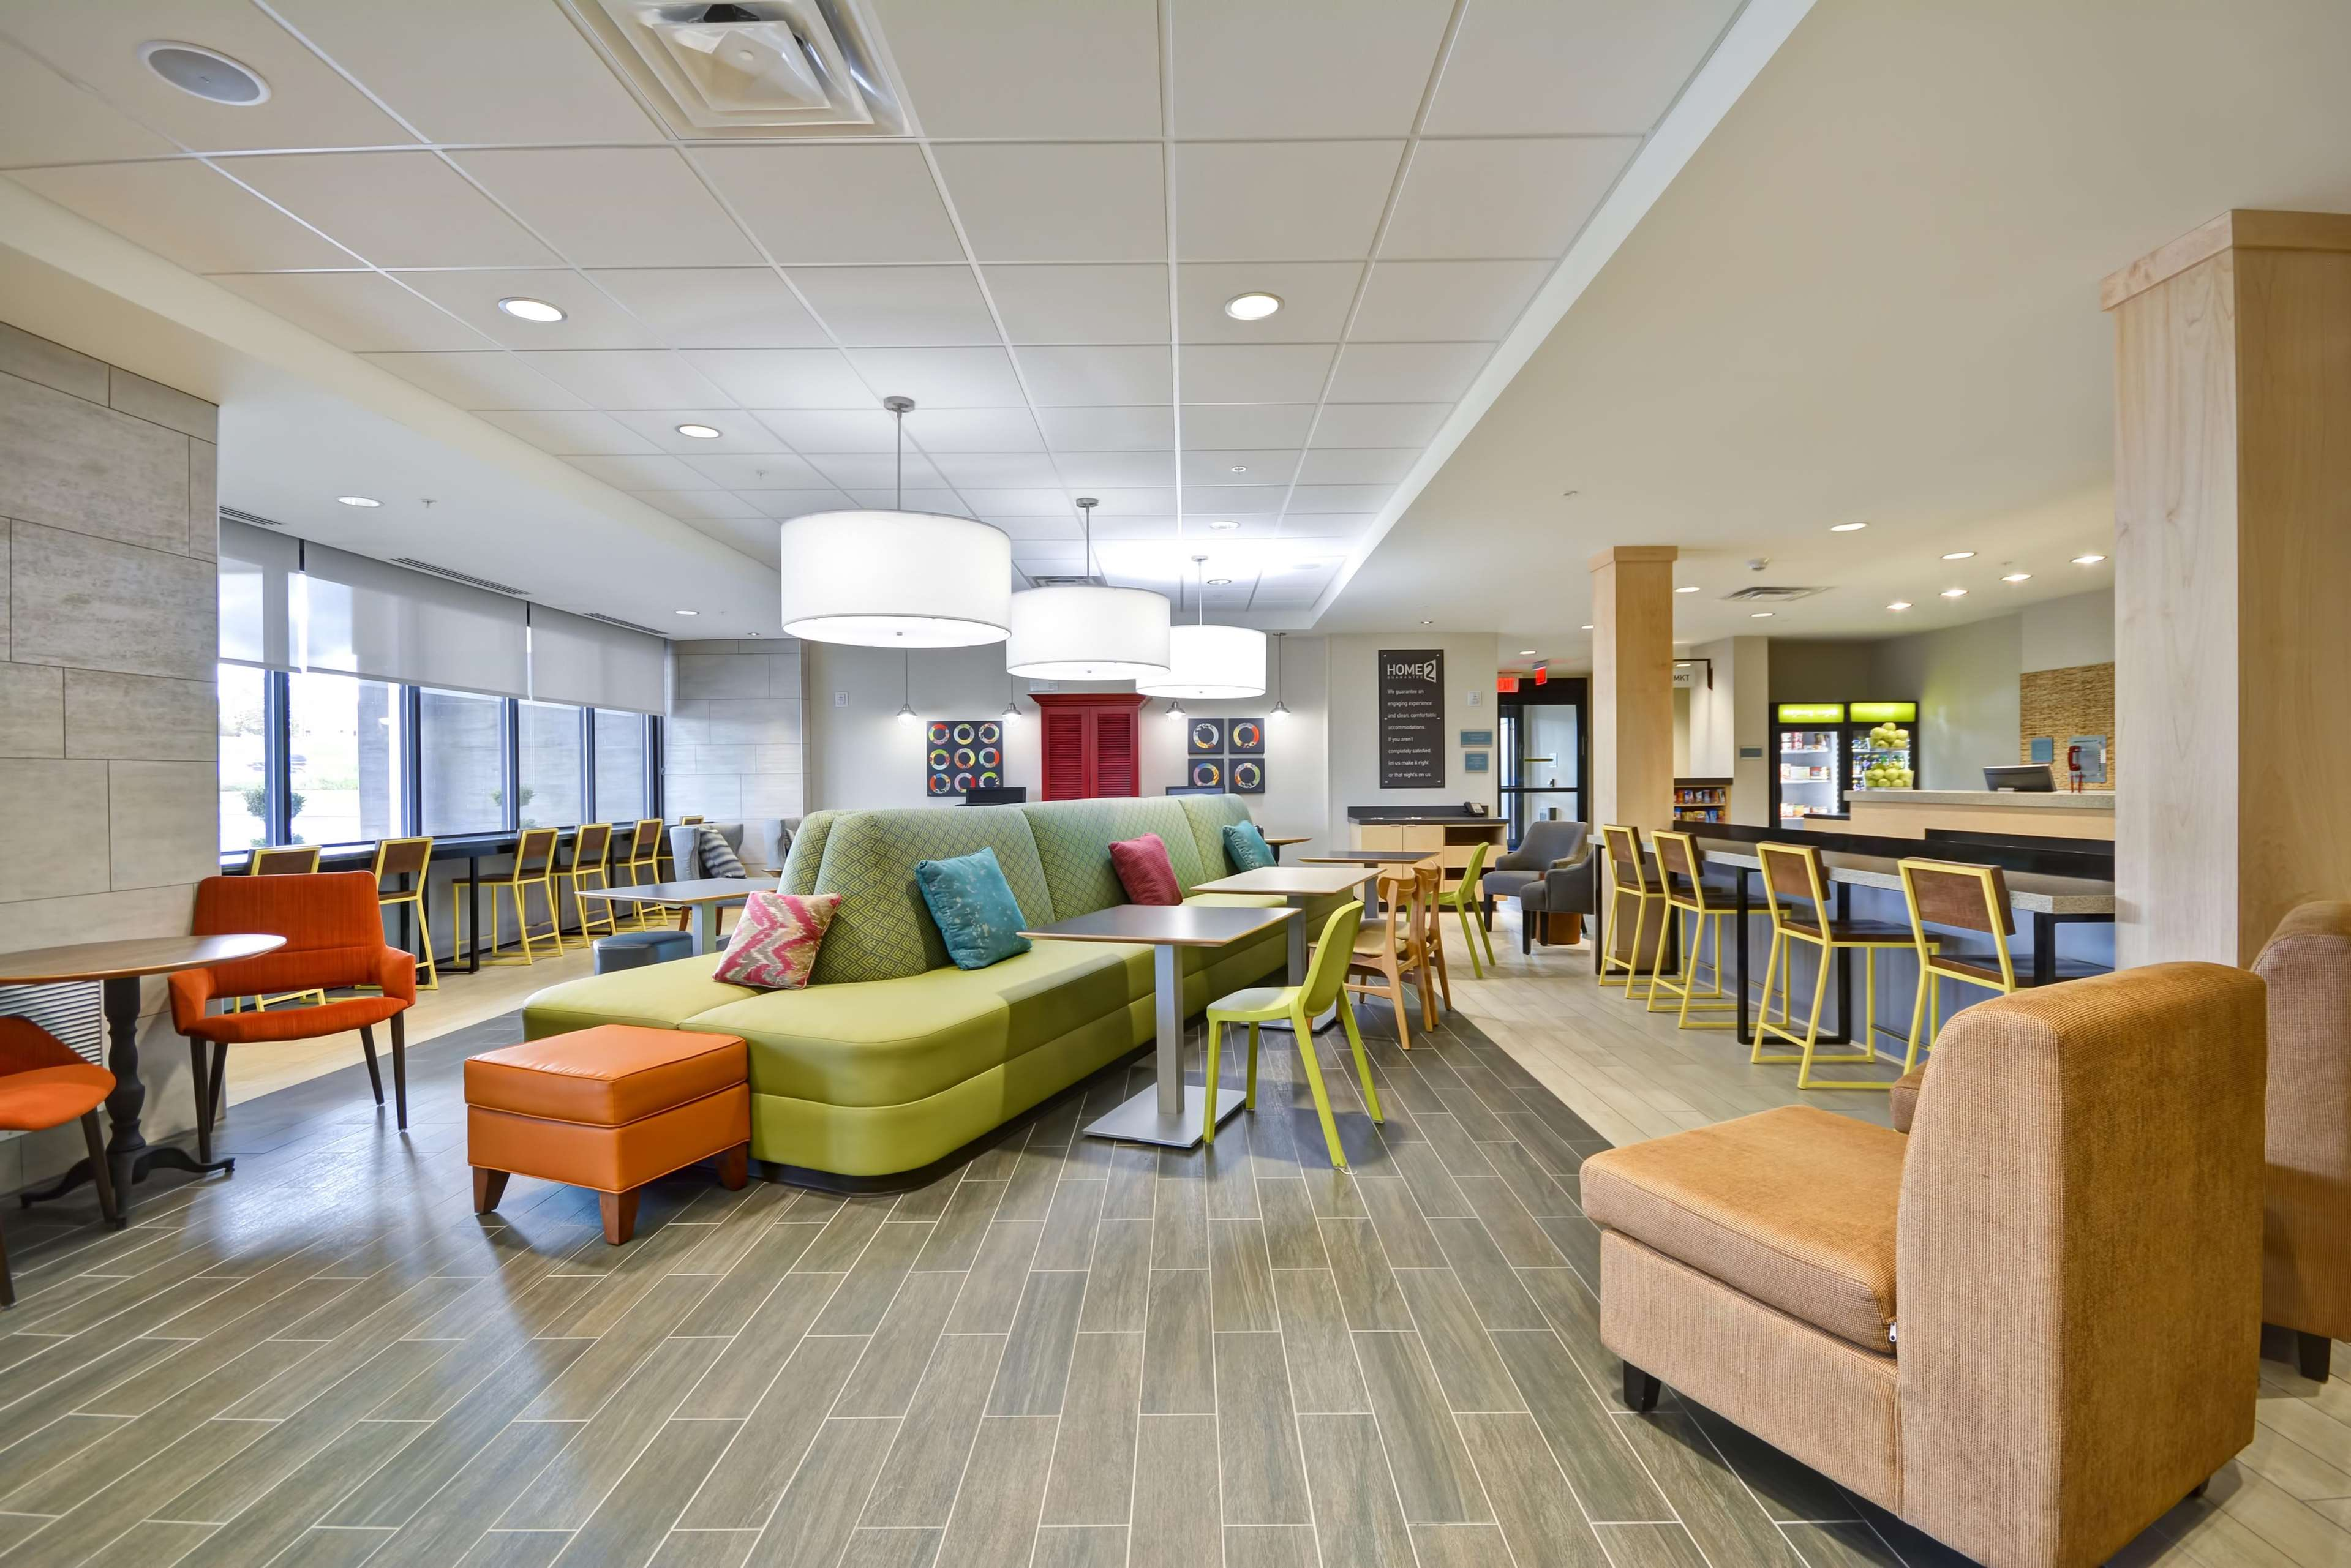 Home2 Suites by Hilton Oswego image 9